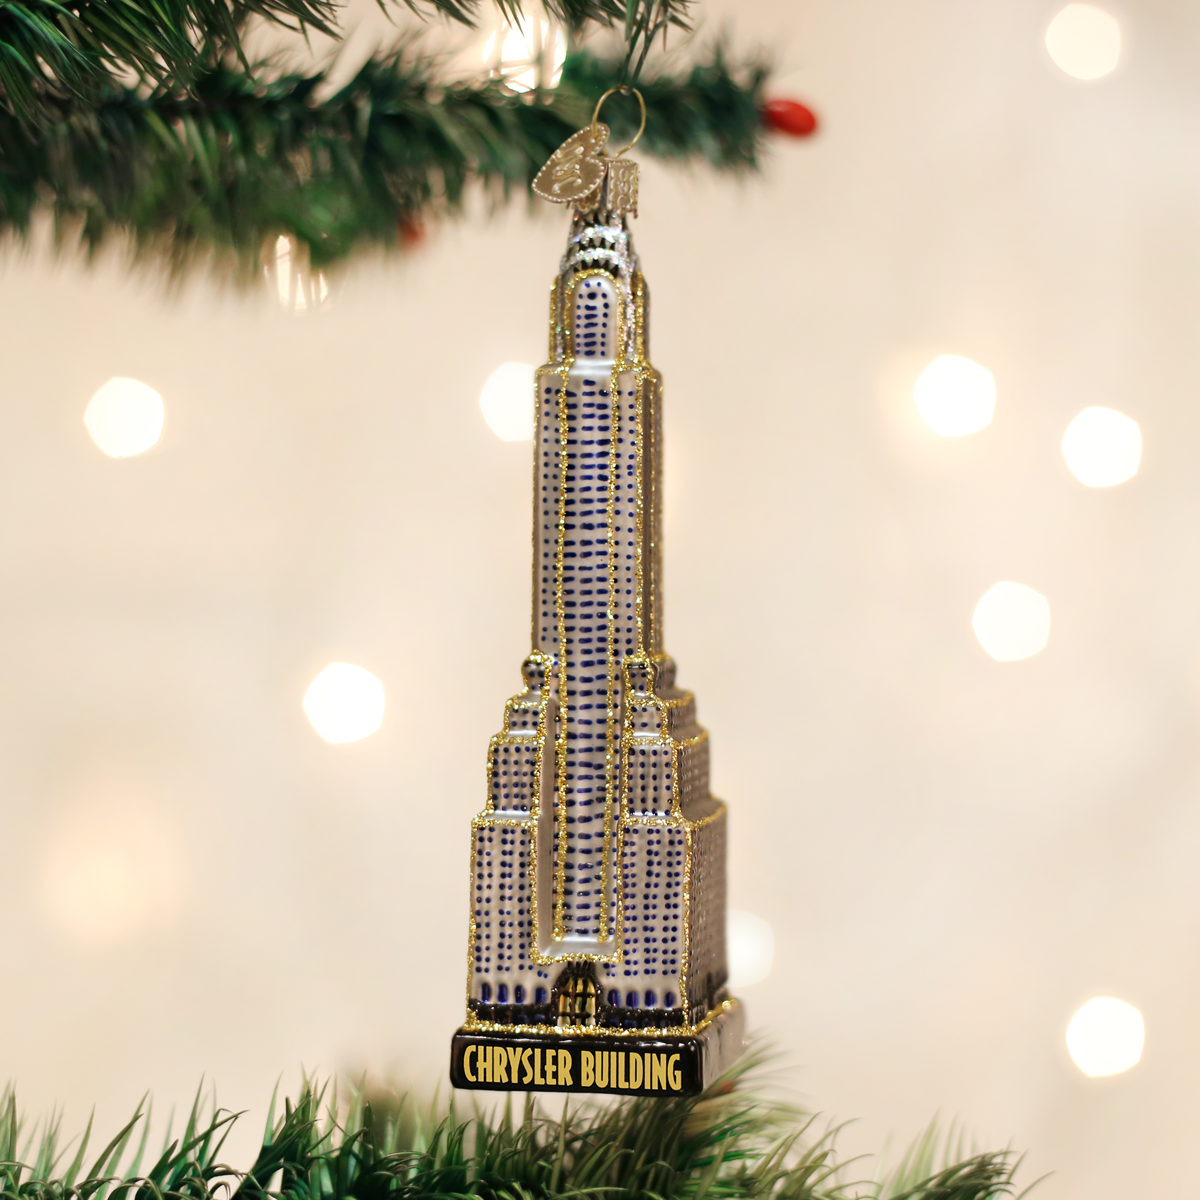 Chrysler Building Ornament - Old World Christmas